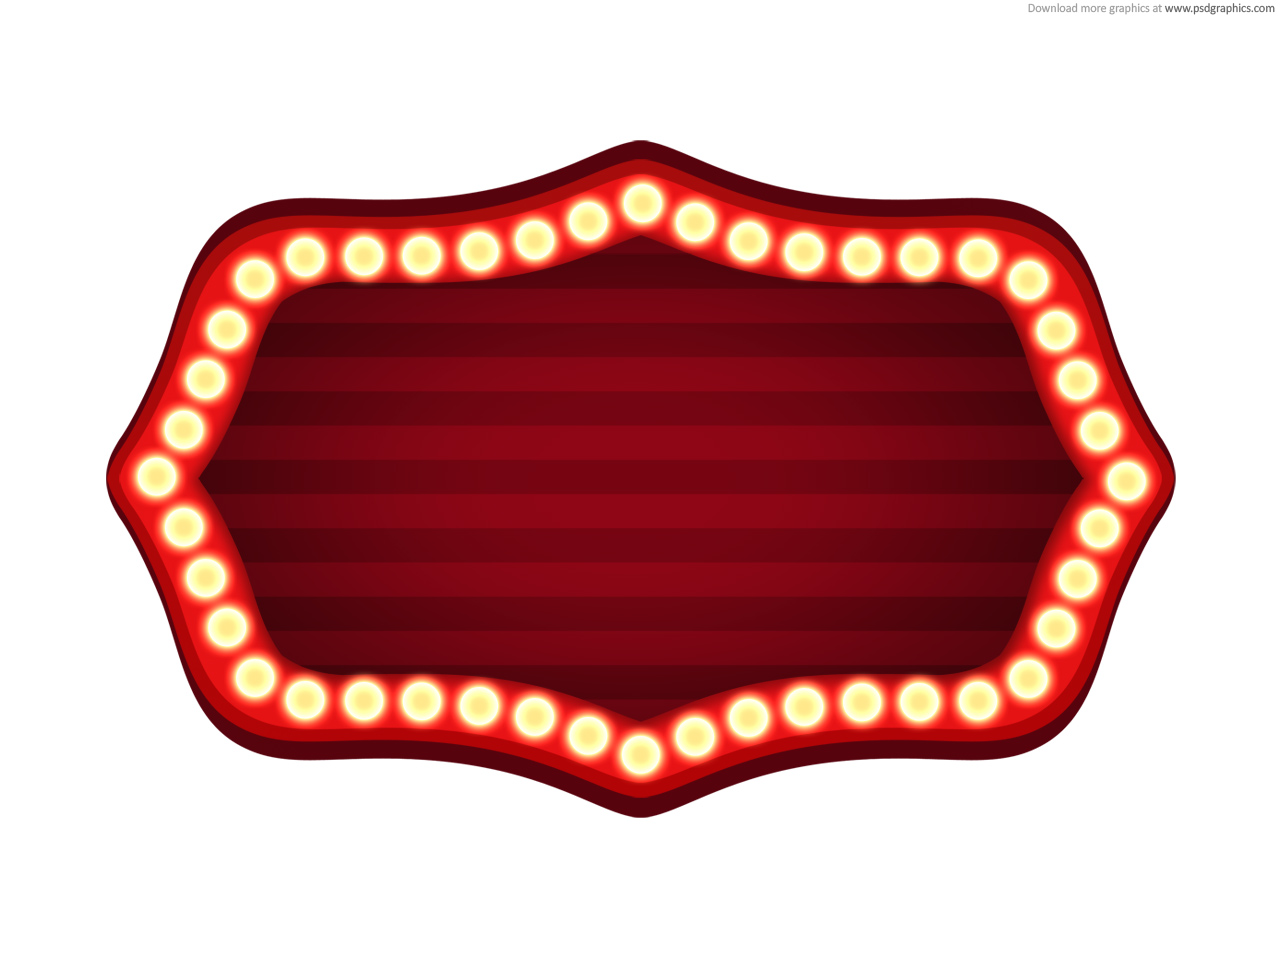 movie marquee clipart cliparts co movie marquee clip art transparent movie marquee clip art for word documents